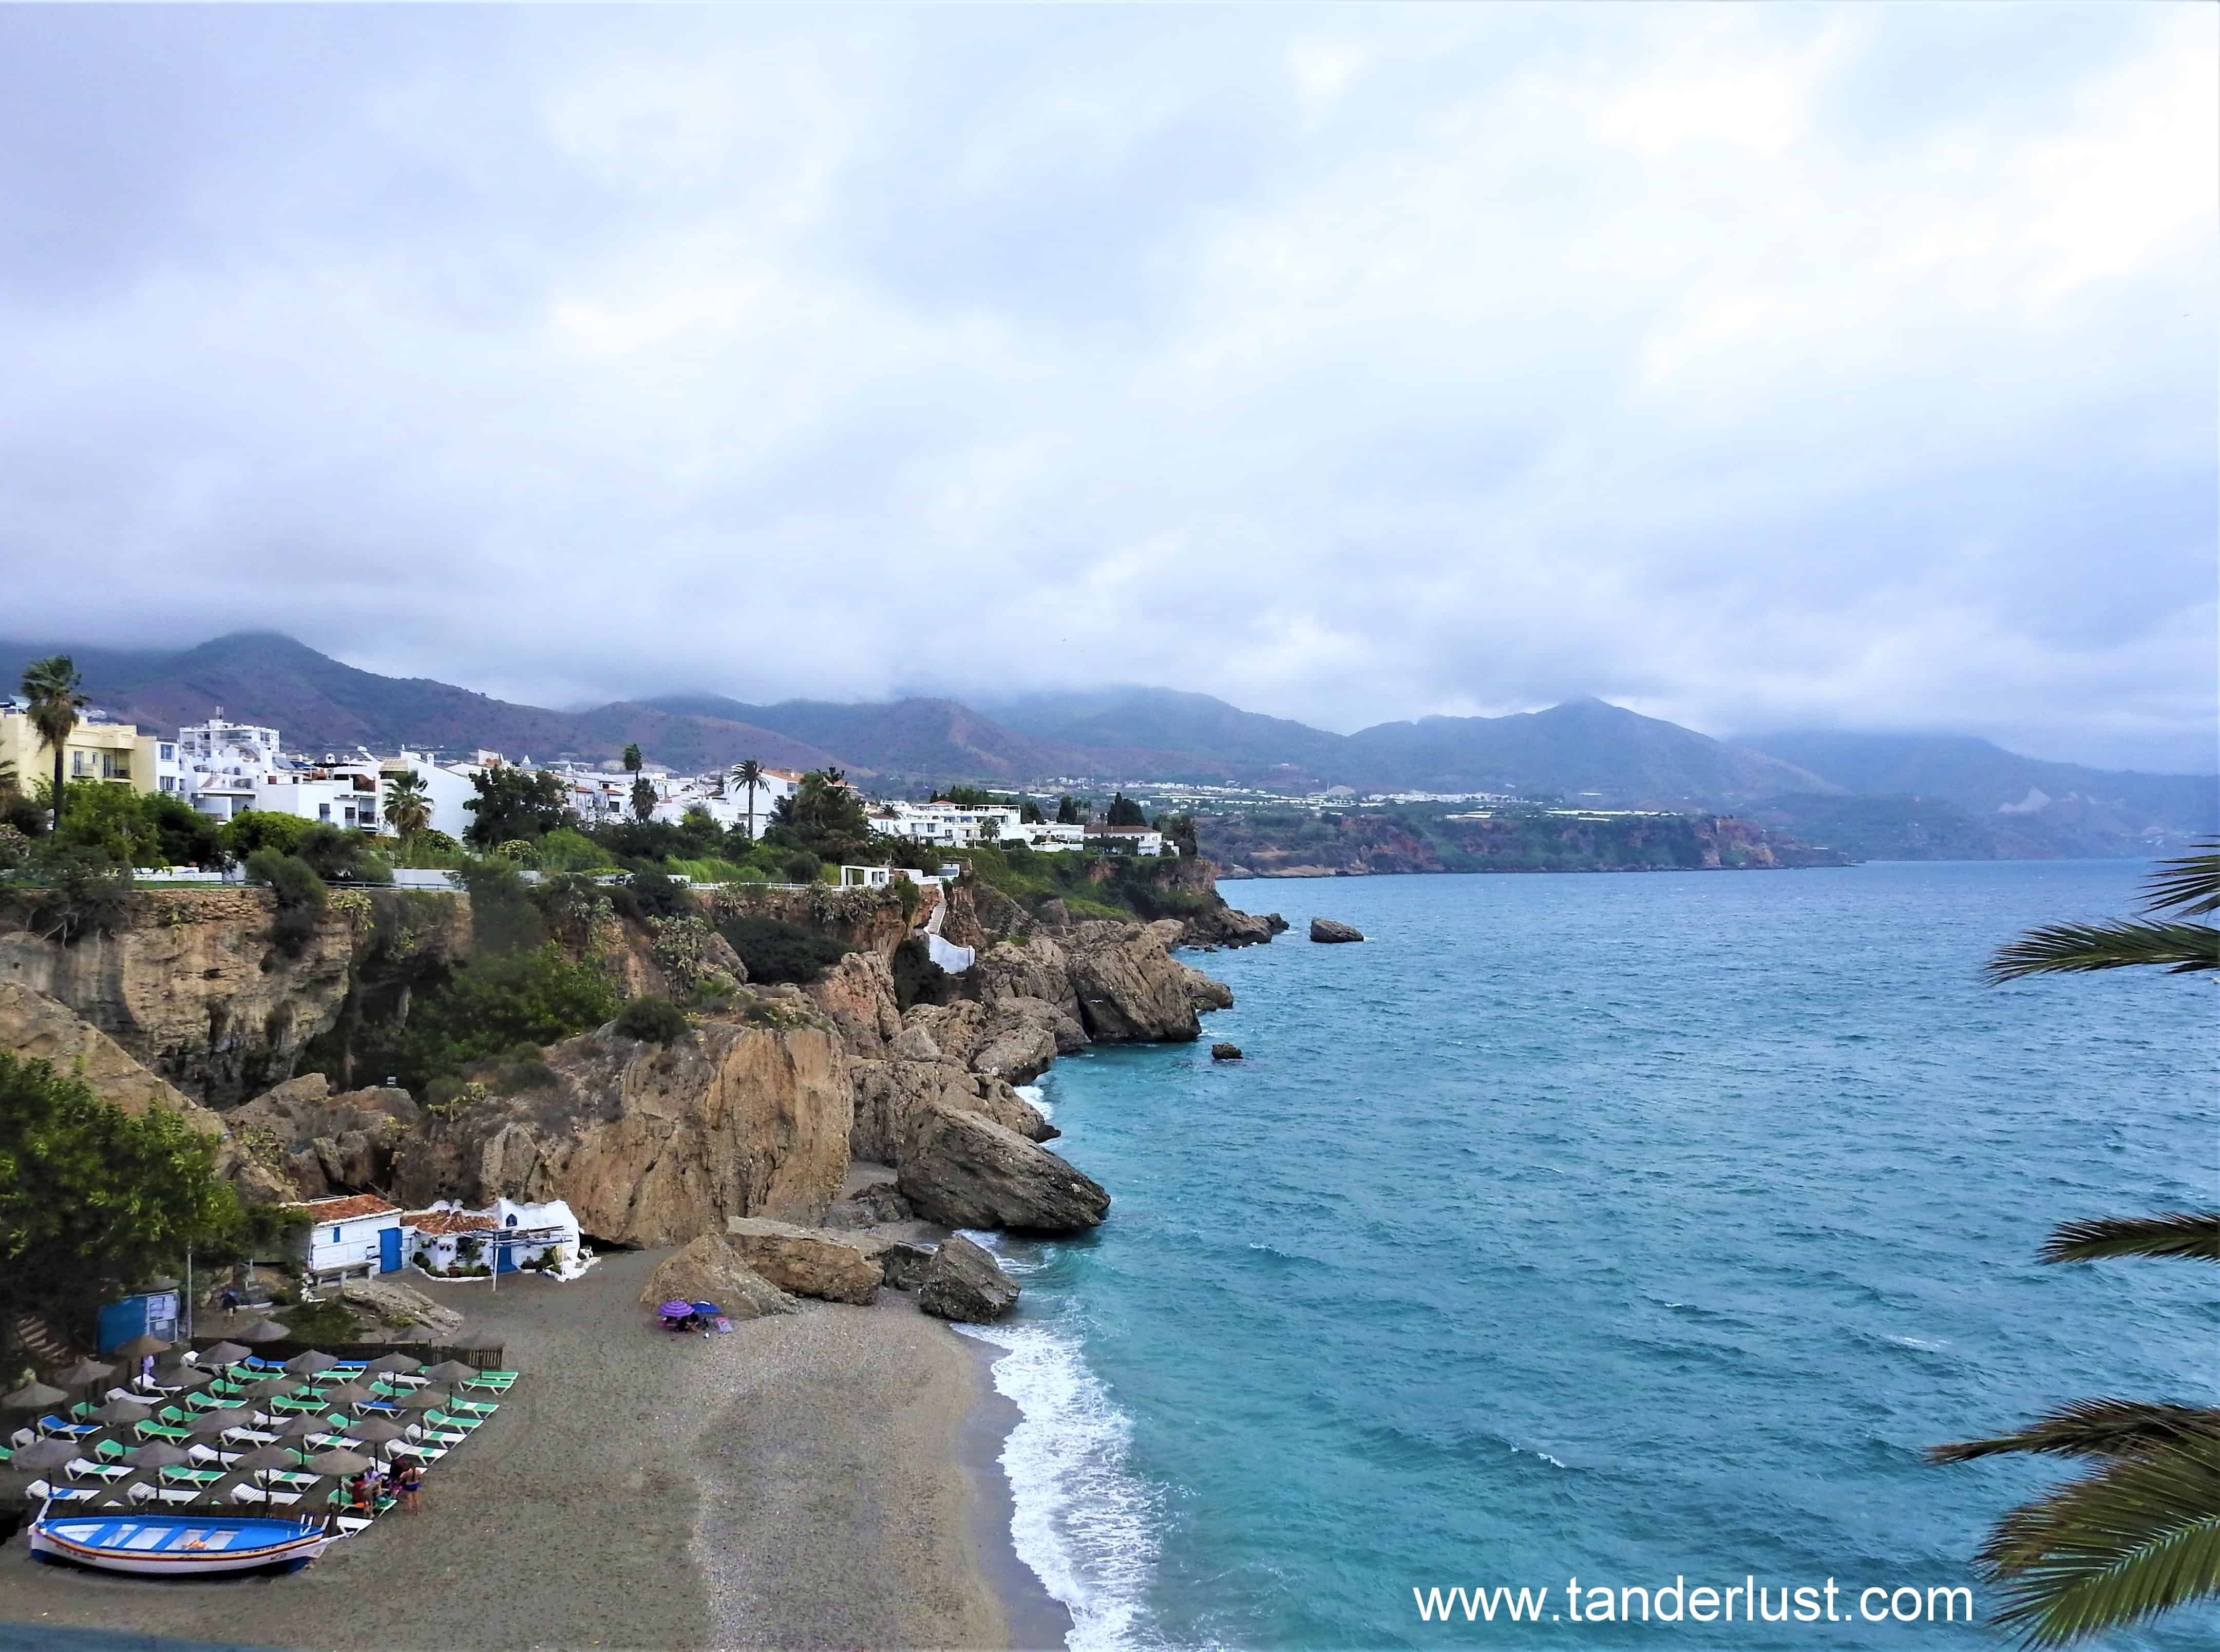 Nerja – A day trip that took me by surprise!